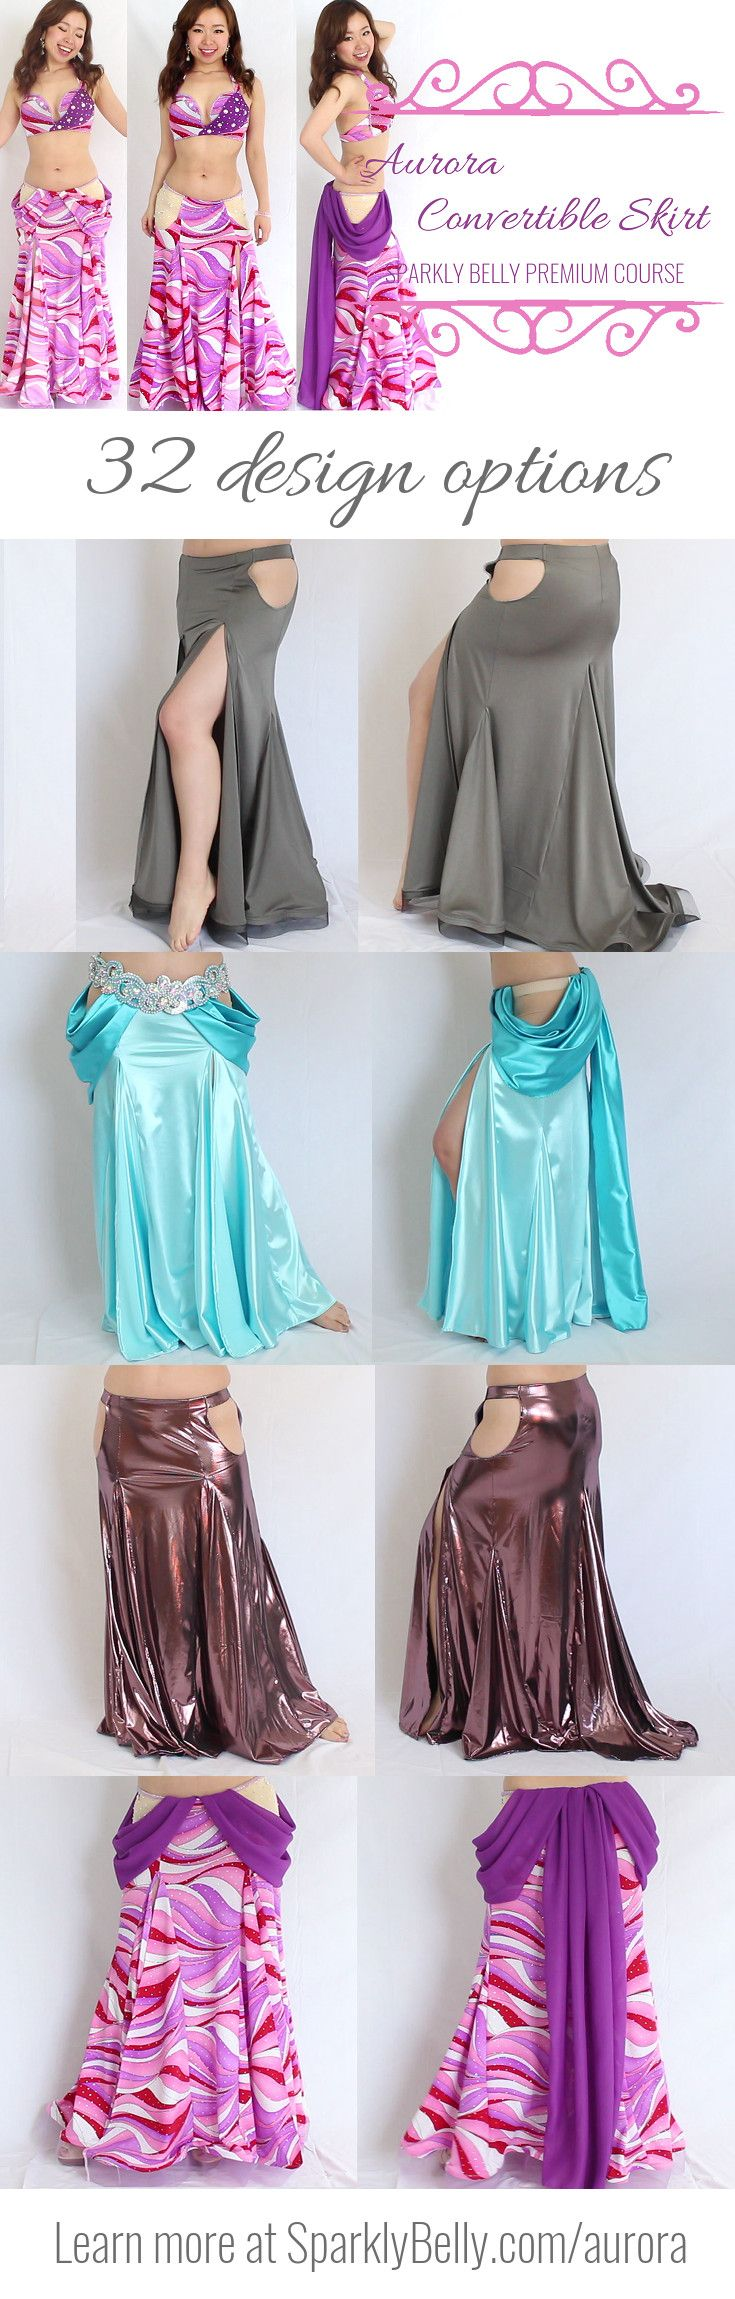 32 beautiful design options in 1 course - Aurora Convertible Skirt!